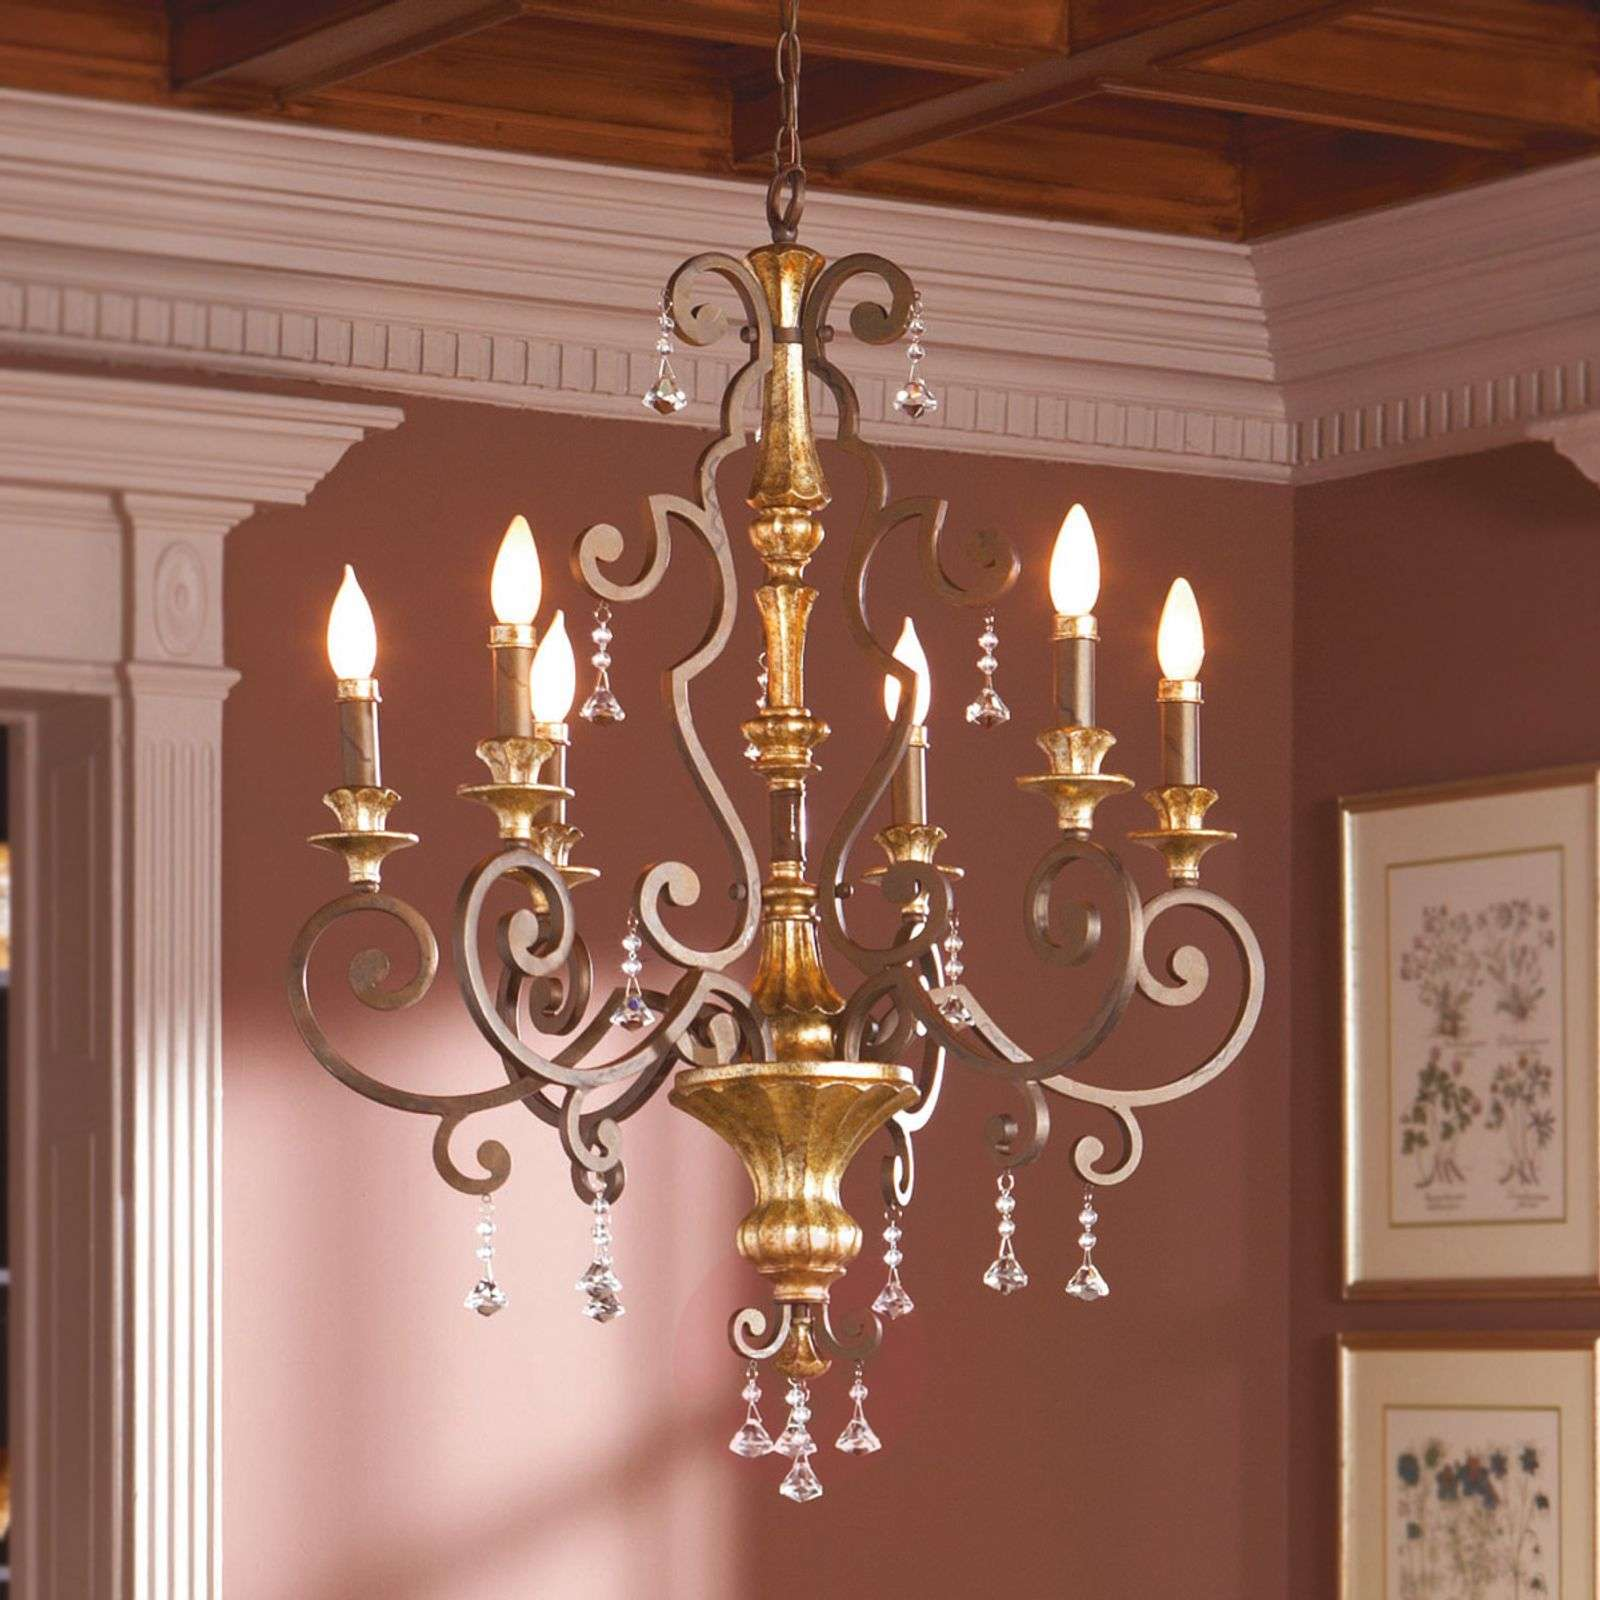 Noble chandelier Marquette with crystal ornaments-3048309-01